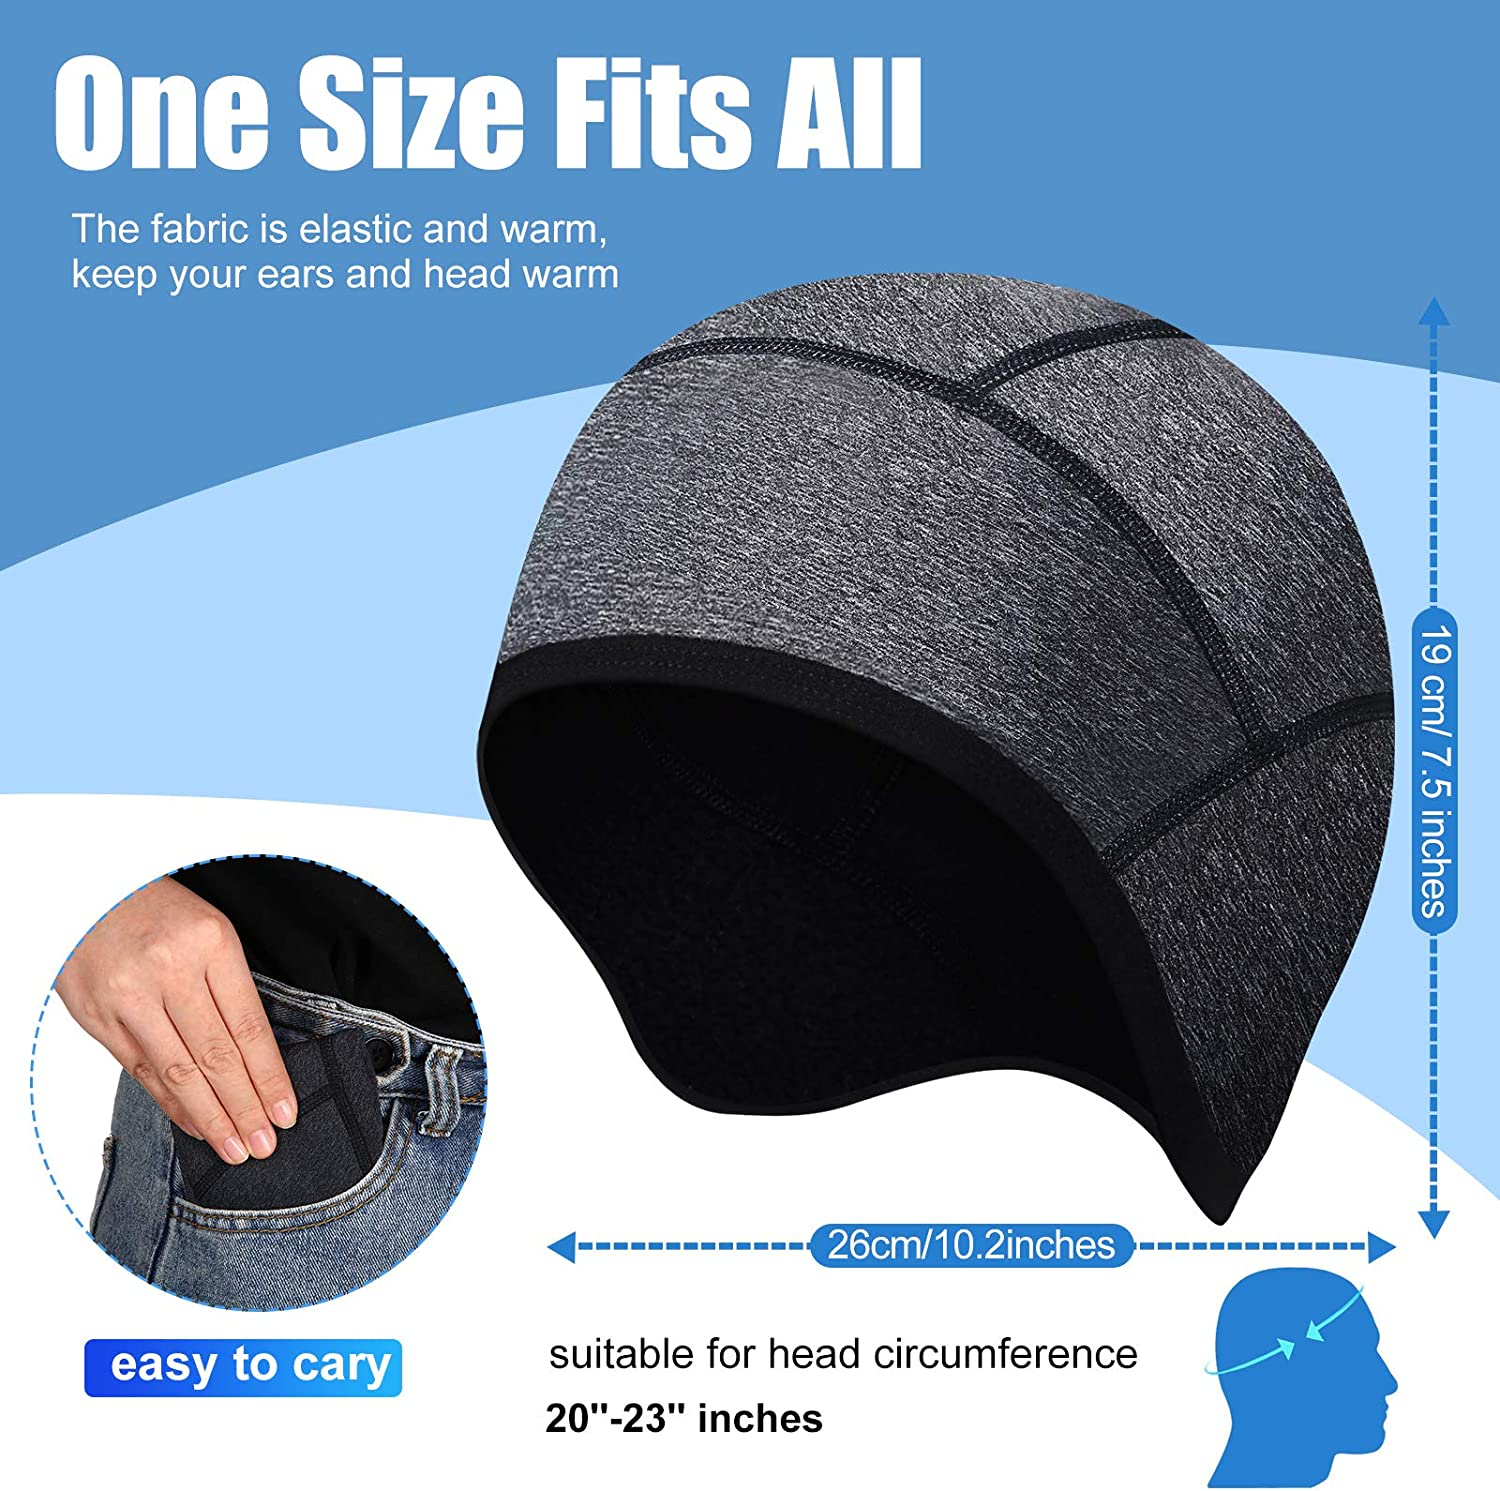 Syhood 2 Pieces Skull Cap Helmet Liner Winter Thermal Running Beanie with Ear Cover Cycling Cap for Men and Women Black, Dark Gray